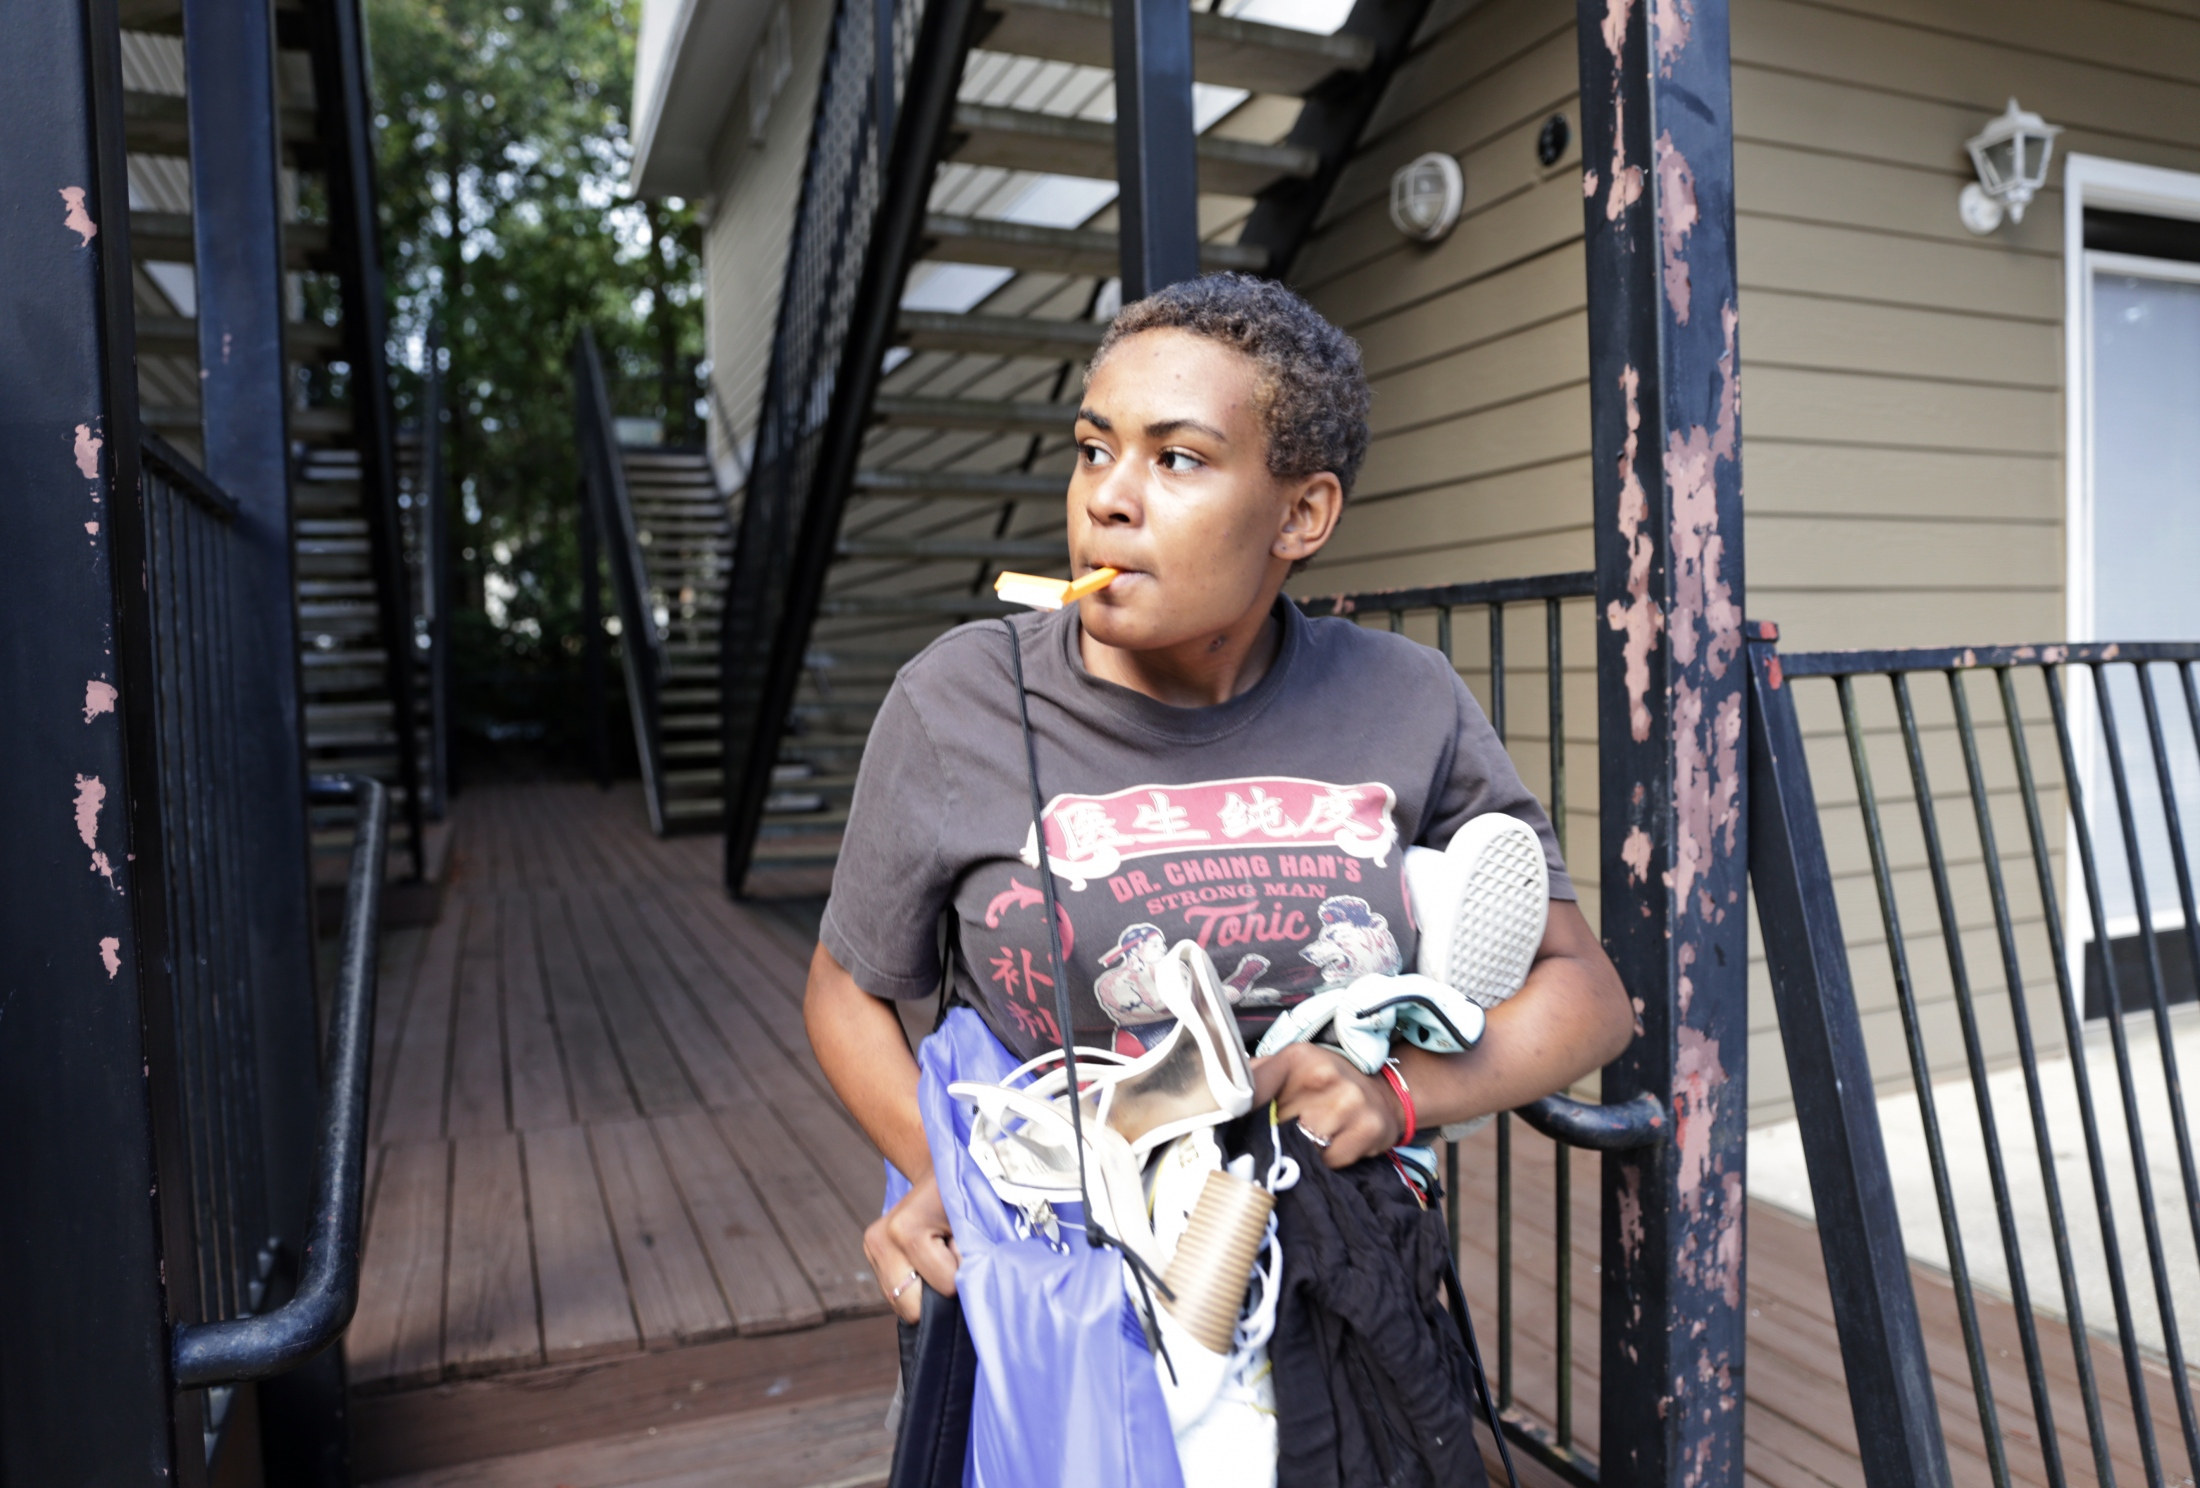 Ravyn Frazier, 15, hustles to move her small bag of personal belongings from a friends house, to, somewhere later. The landlord realized multiple homeless youth were living in the rental and all were evicted. Her mother can't help. She is living on the street as well.